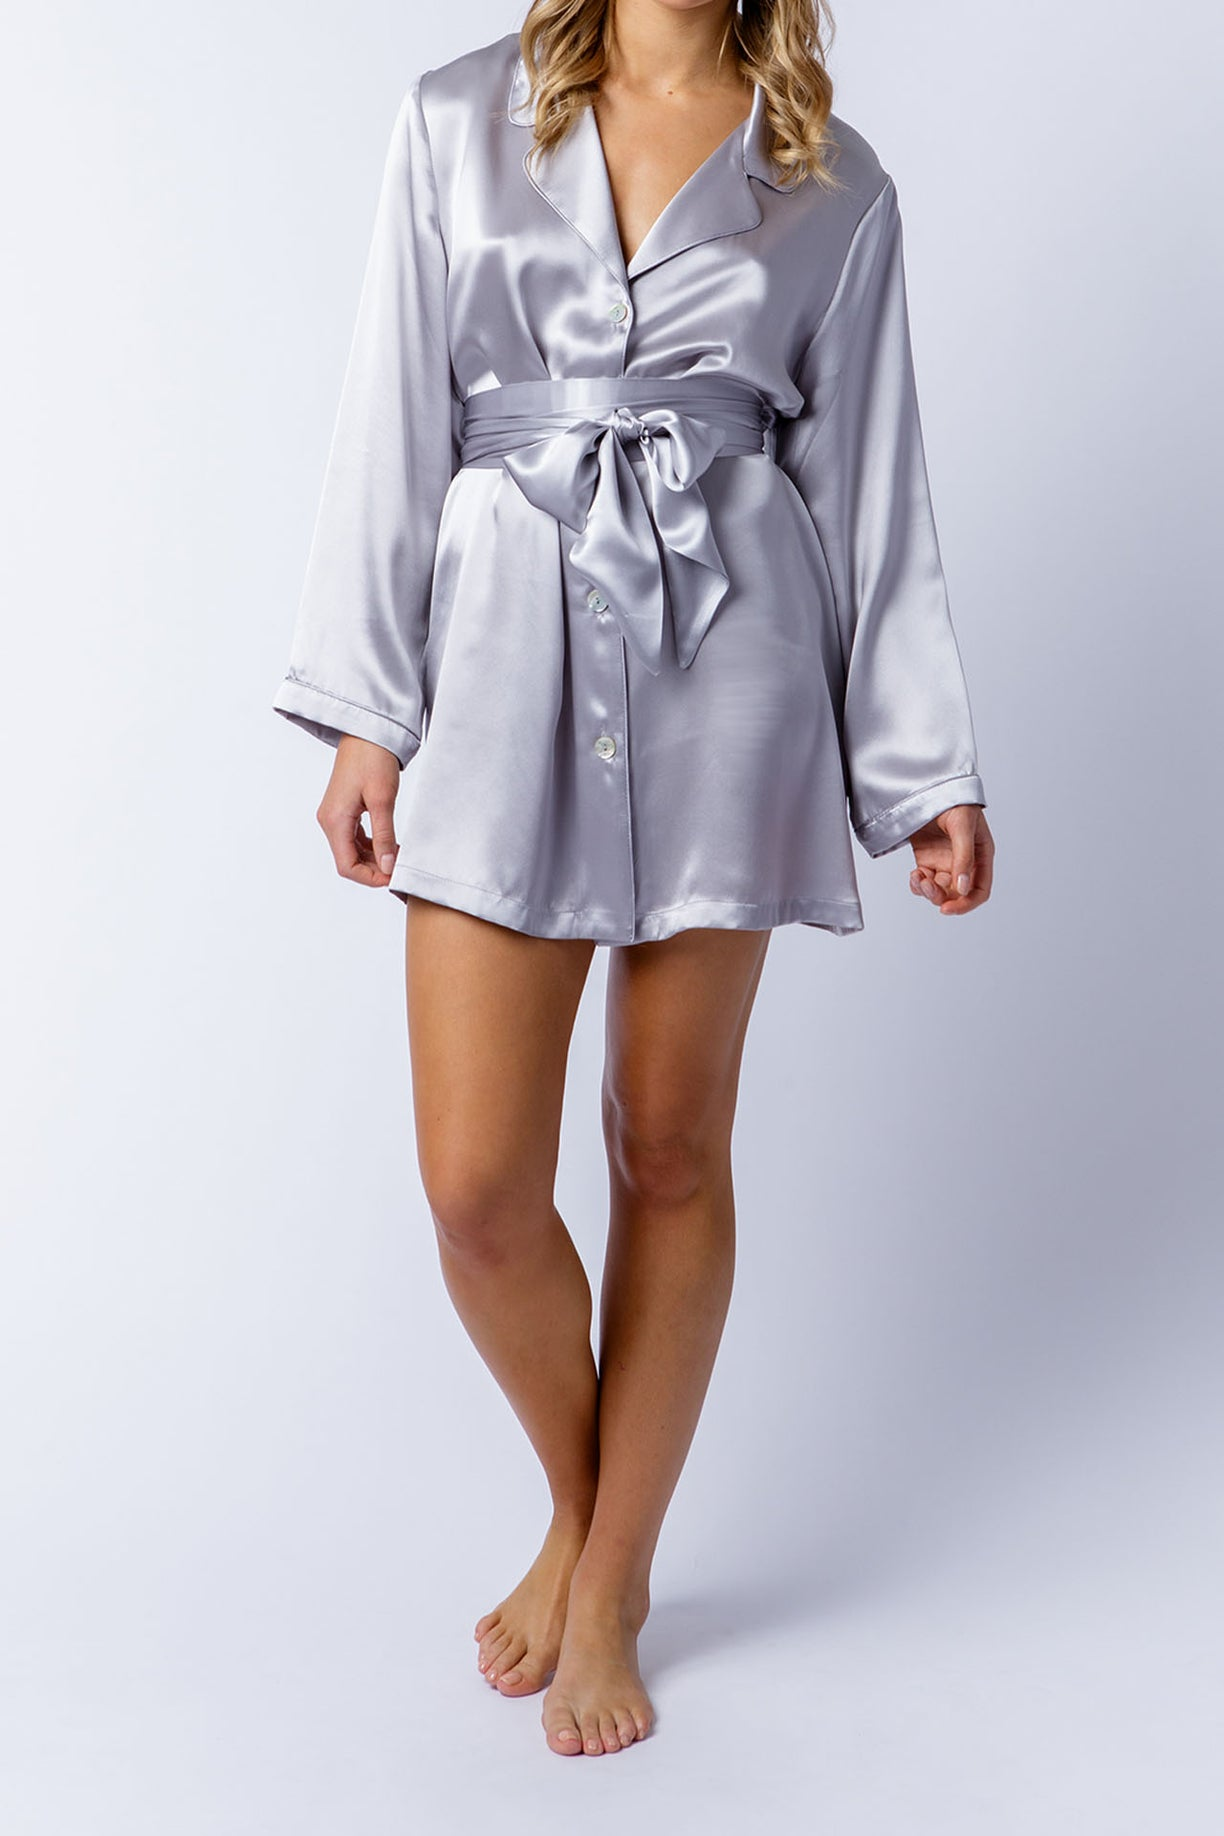 Margie shirt in silver, belted front